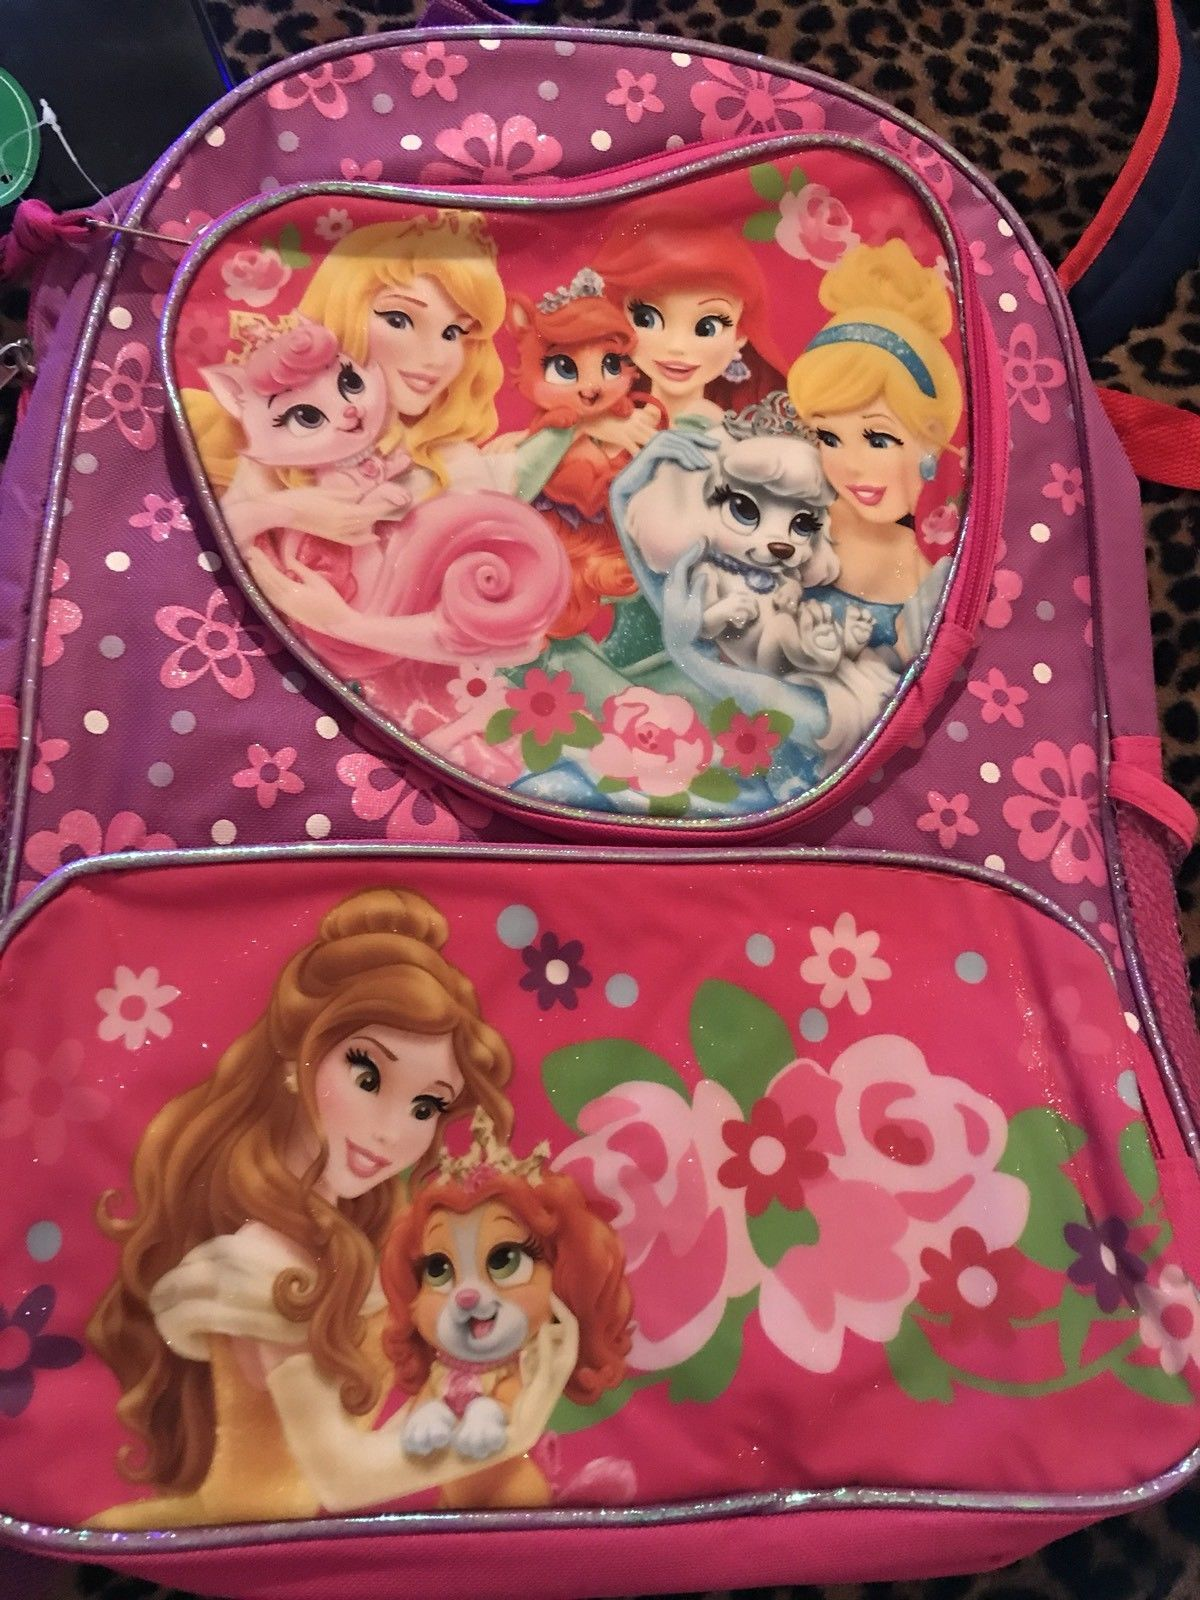 Aurora Pink Shoulder Bag Disney Princess Palace Pets